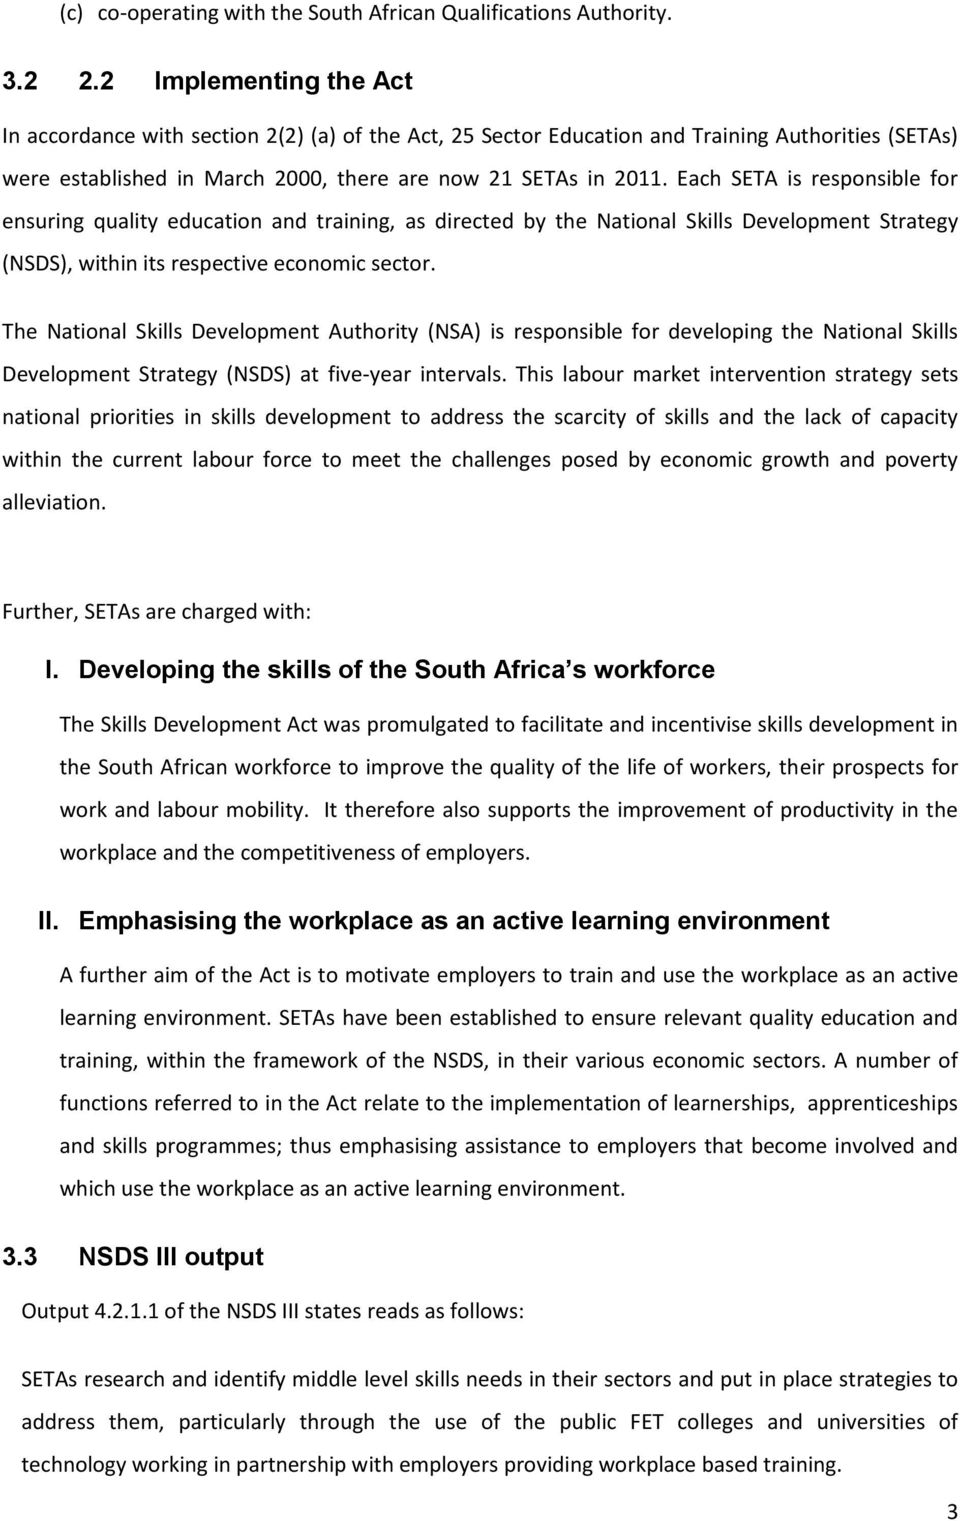 Each SETA is responsible for ensuring quality education and training, as directed by the National Skills Development Strategy (NSDS), within its respective economic sector.